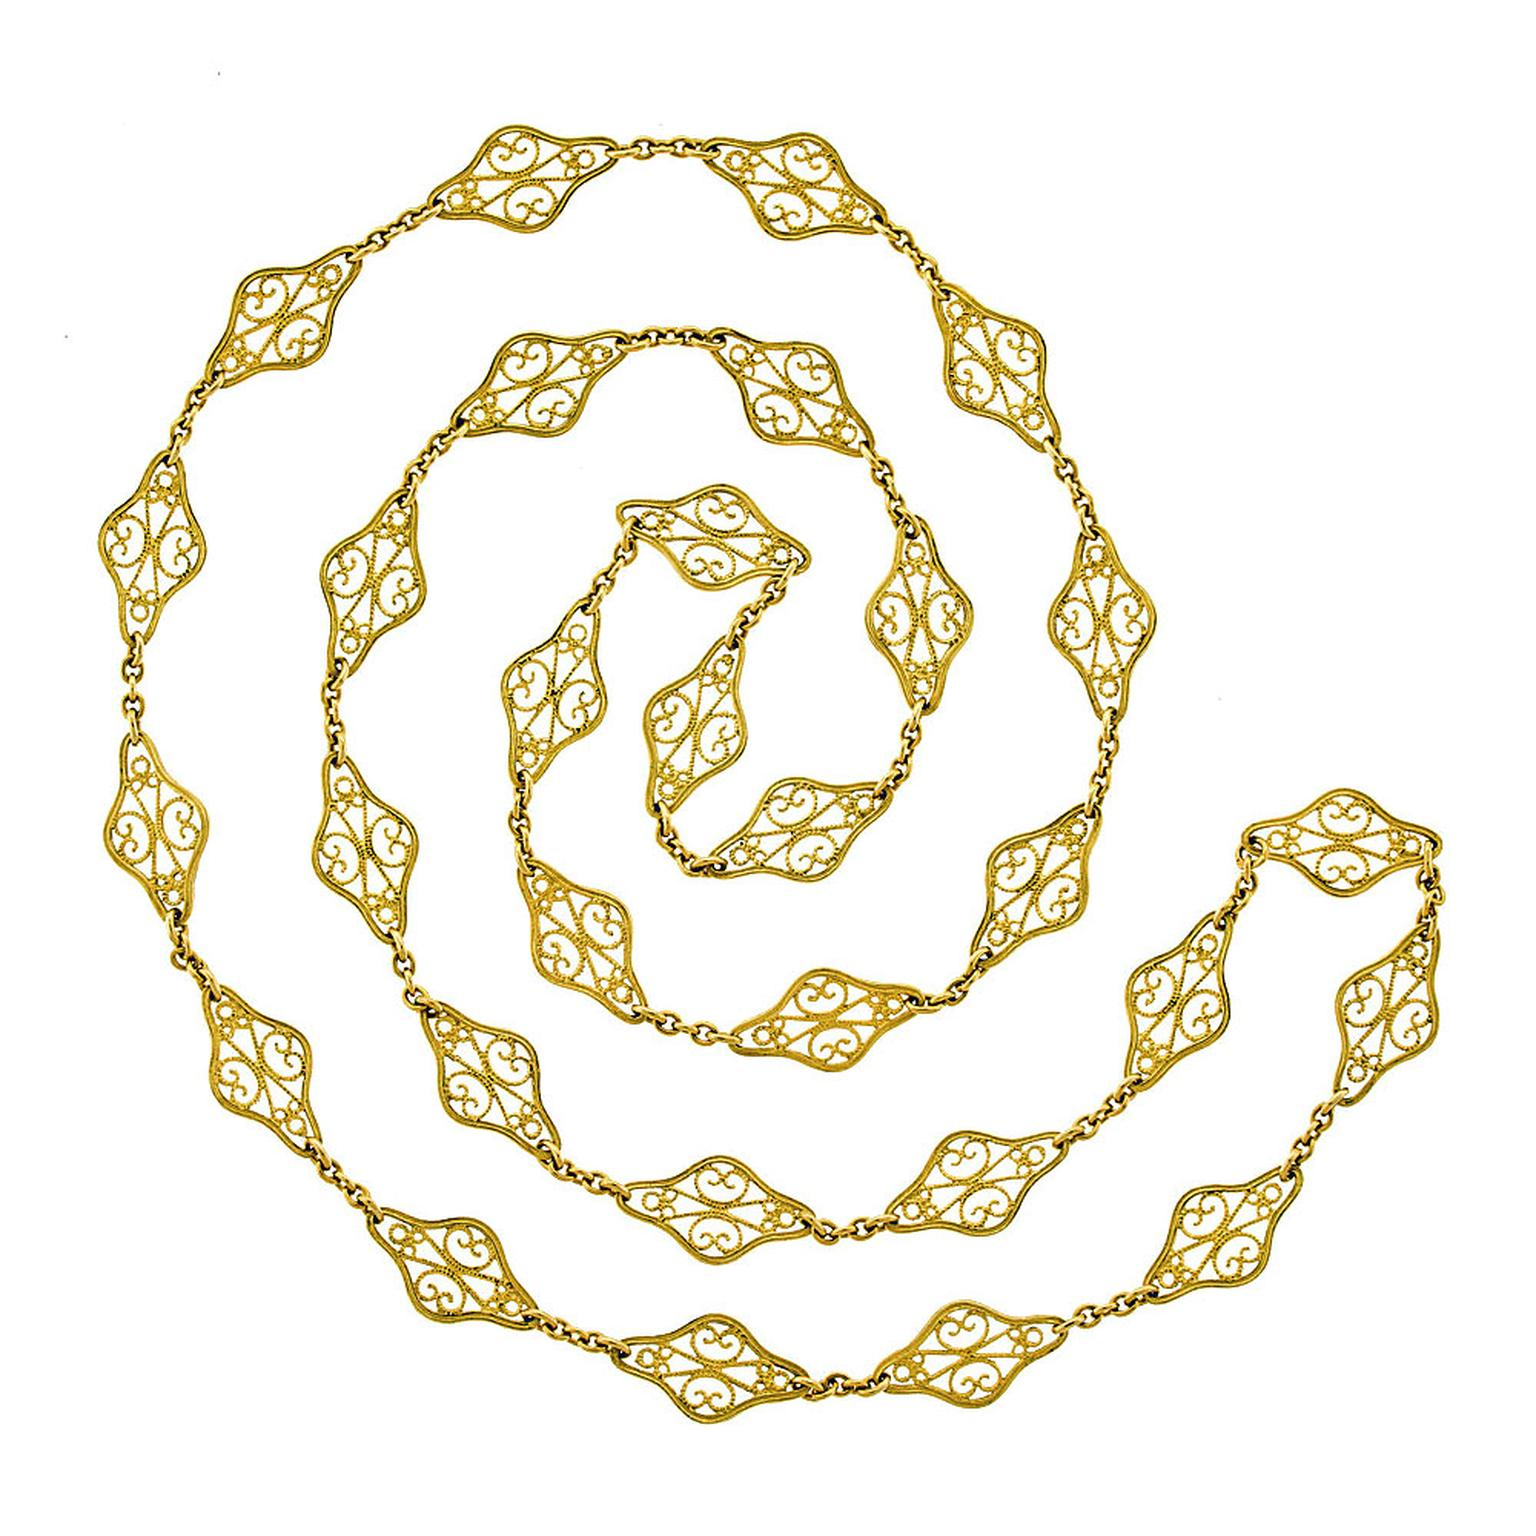 Lawrence Jeffrey Estate Jewellers Filigree chain